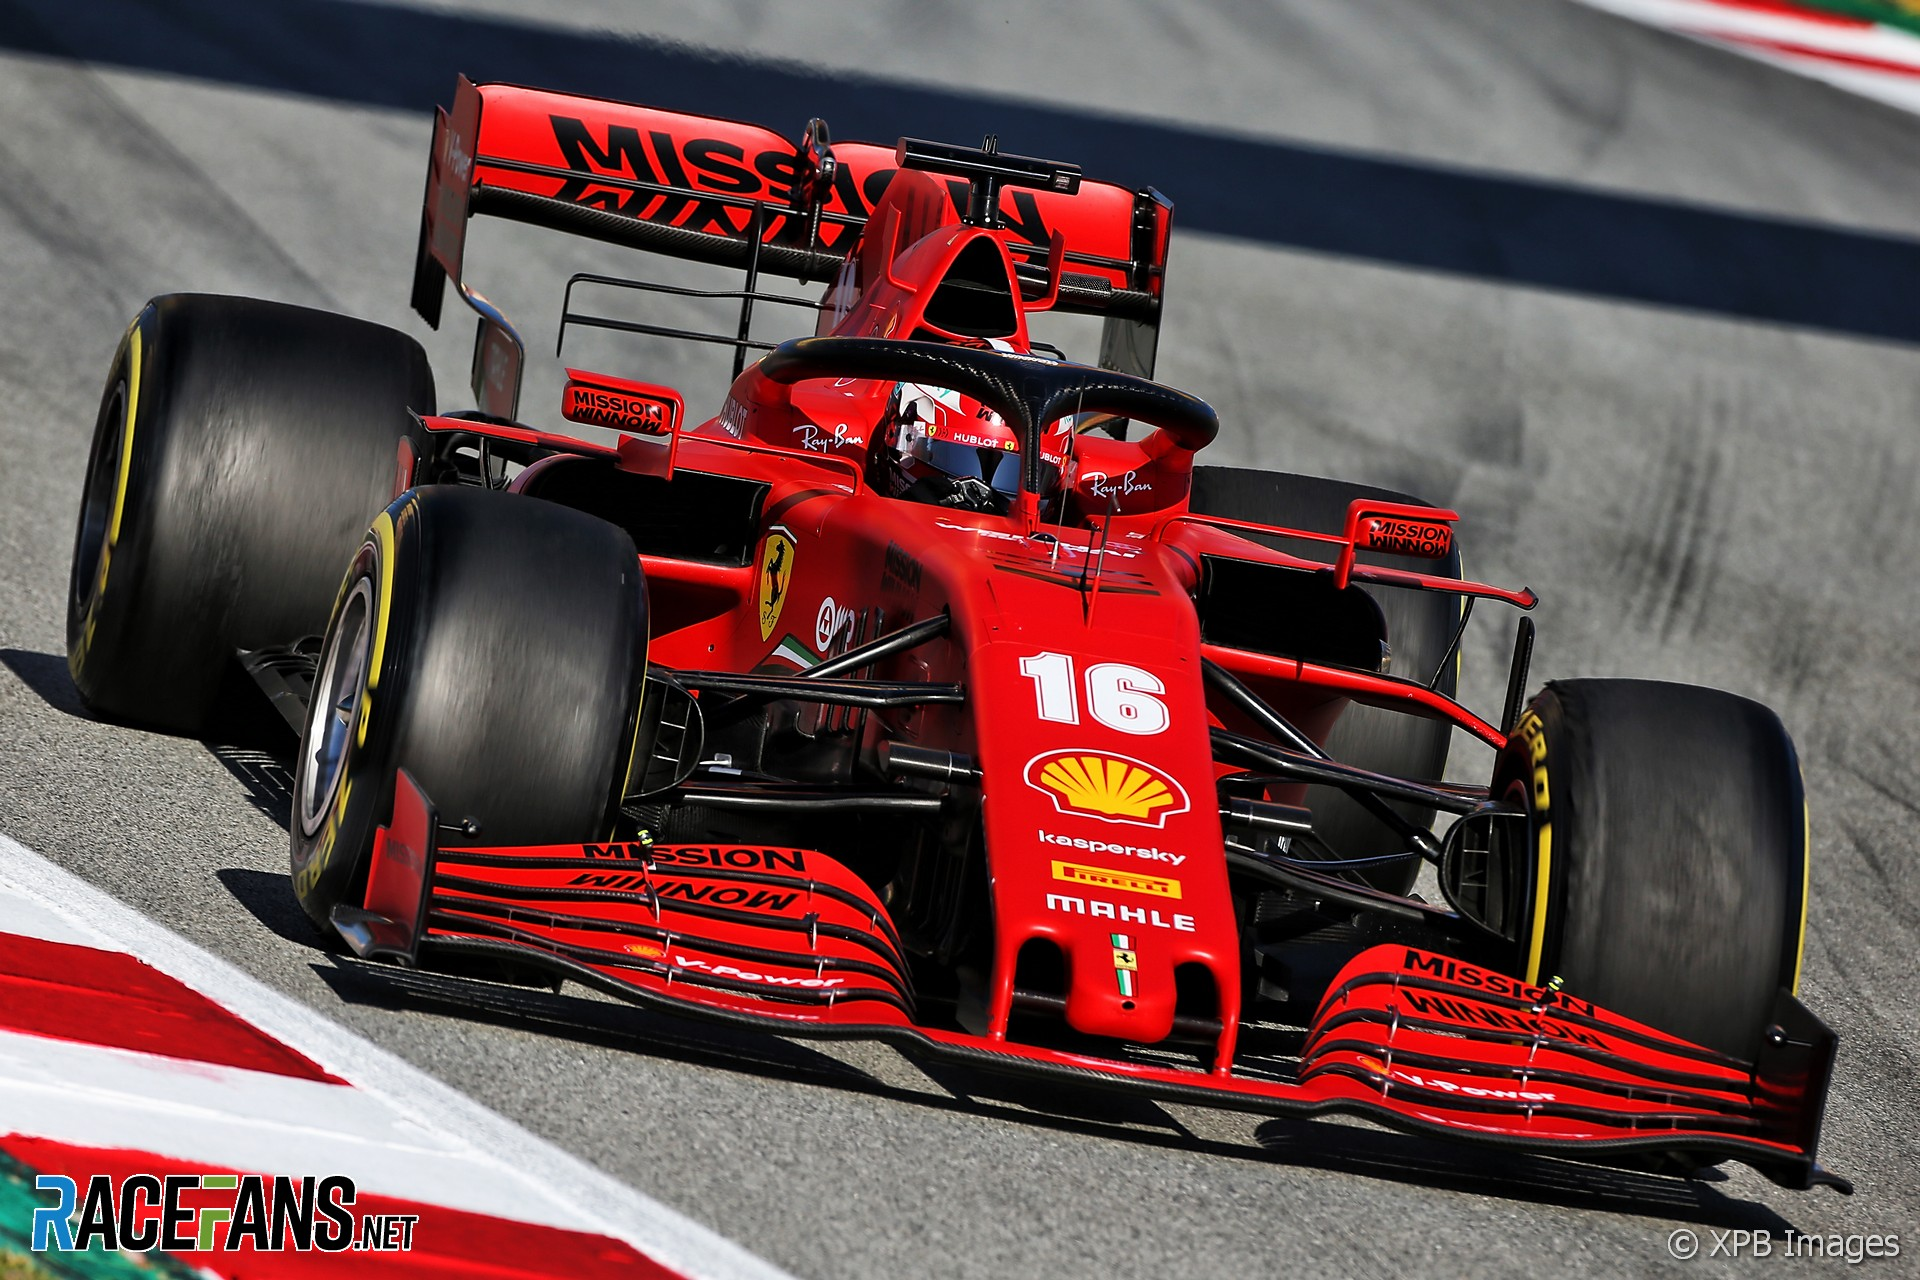 Fia Reaches Agreement With Ferrari After Power Unit Investigation Racefans